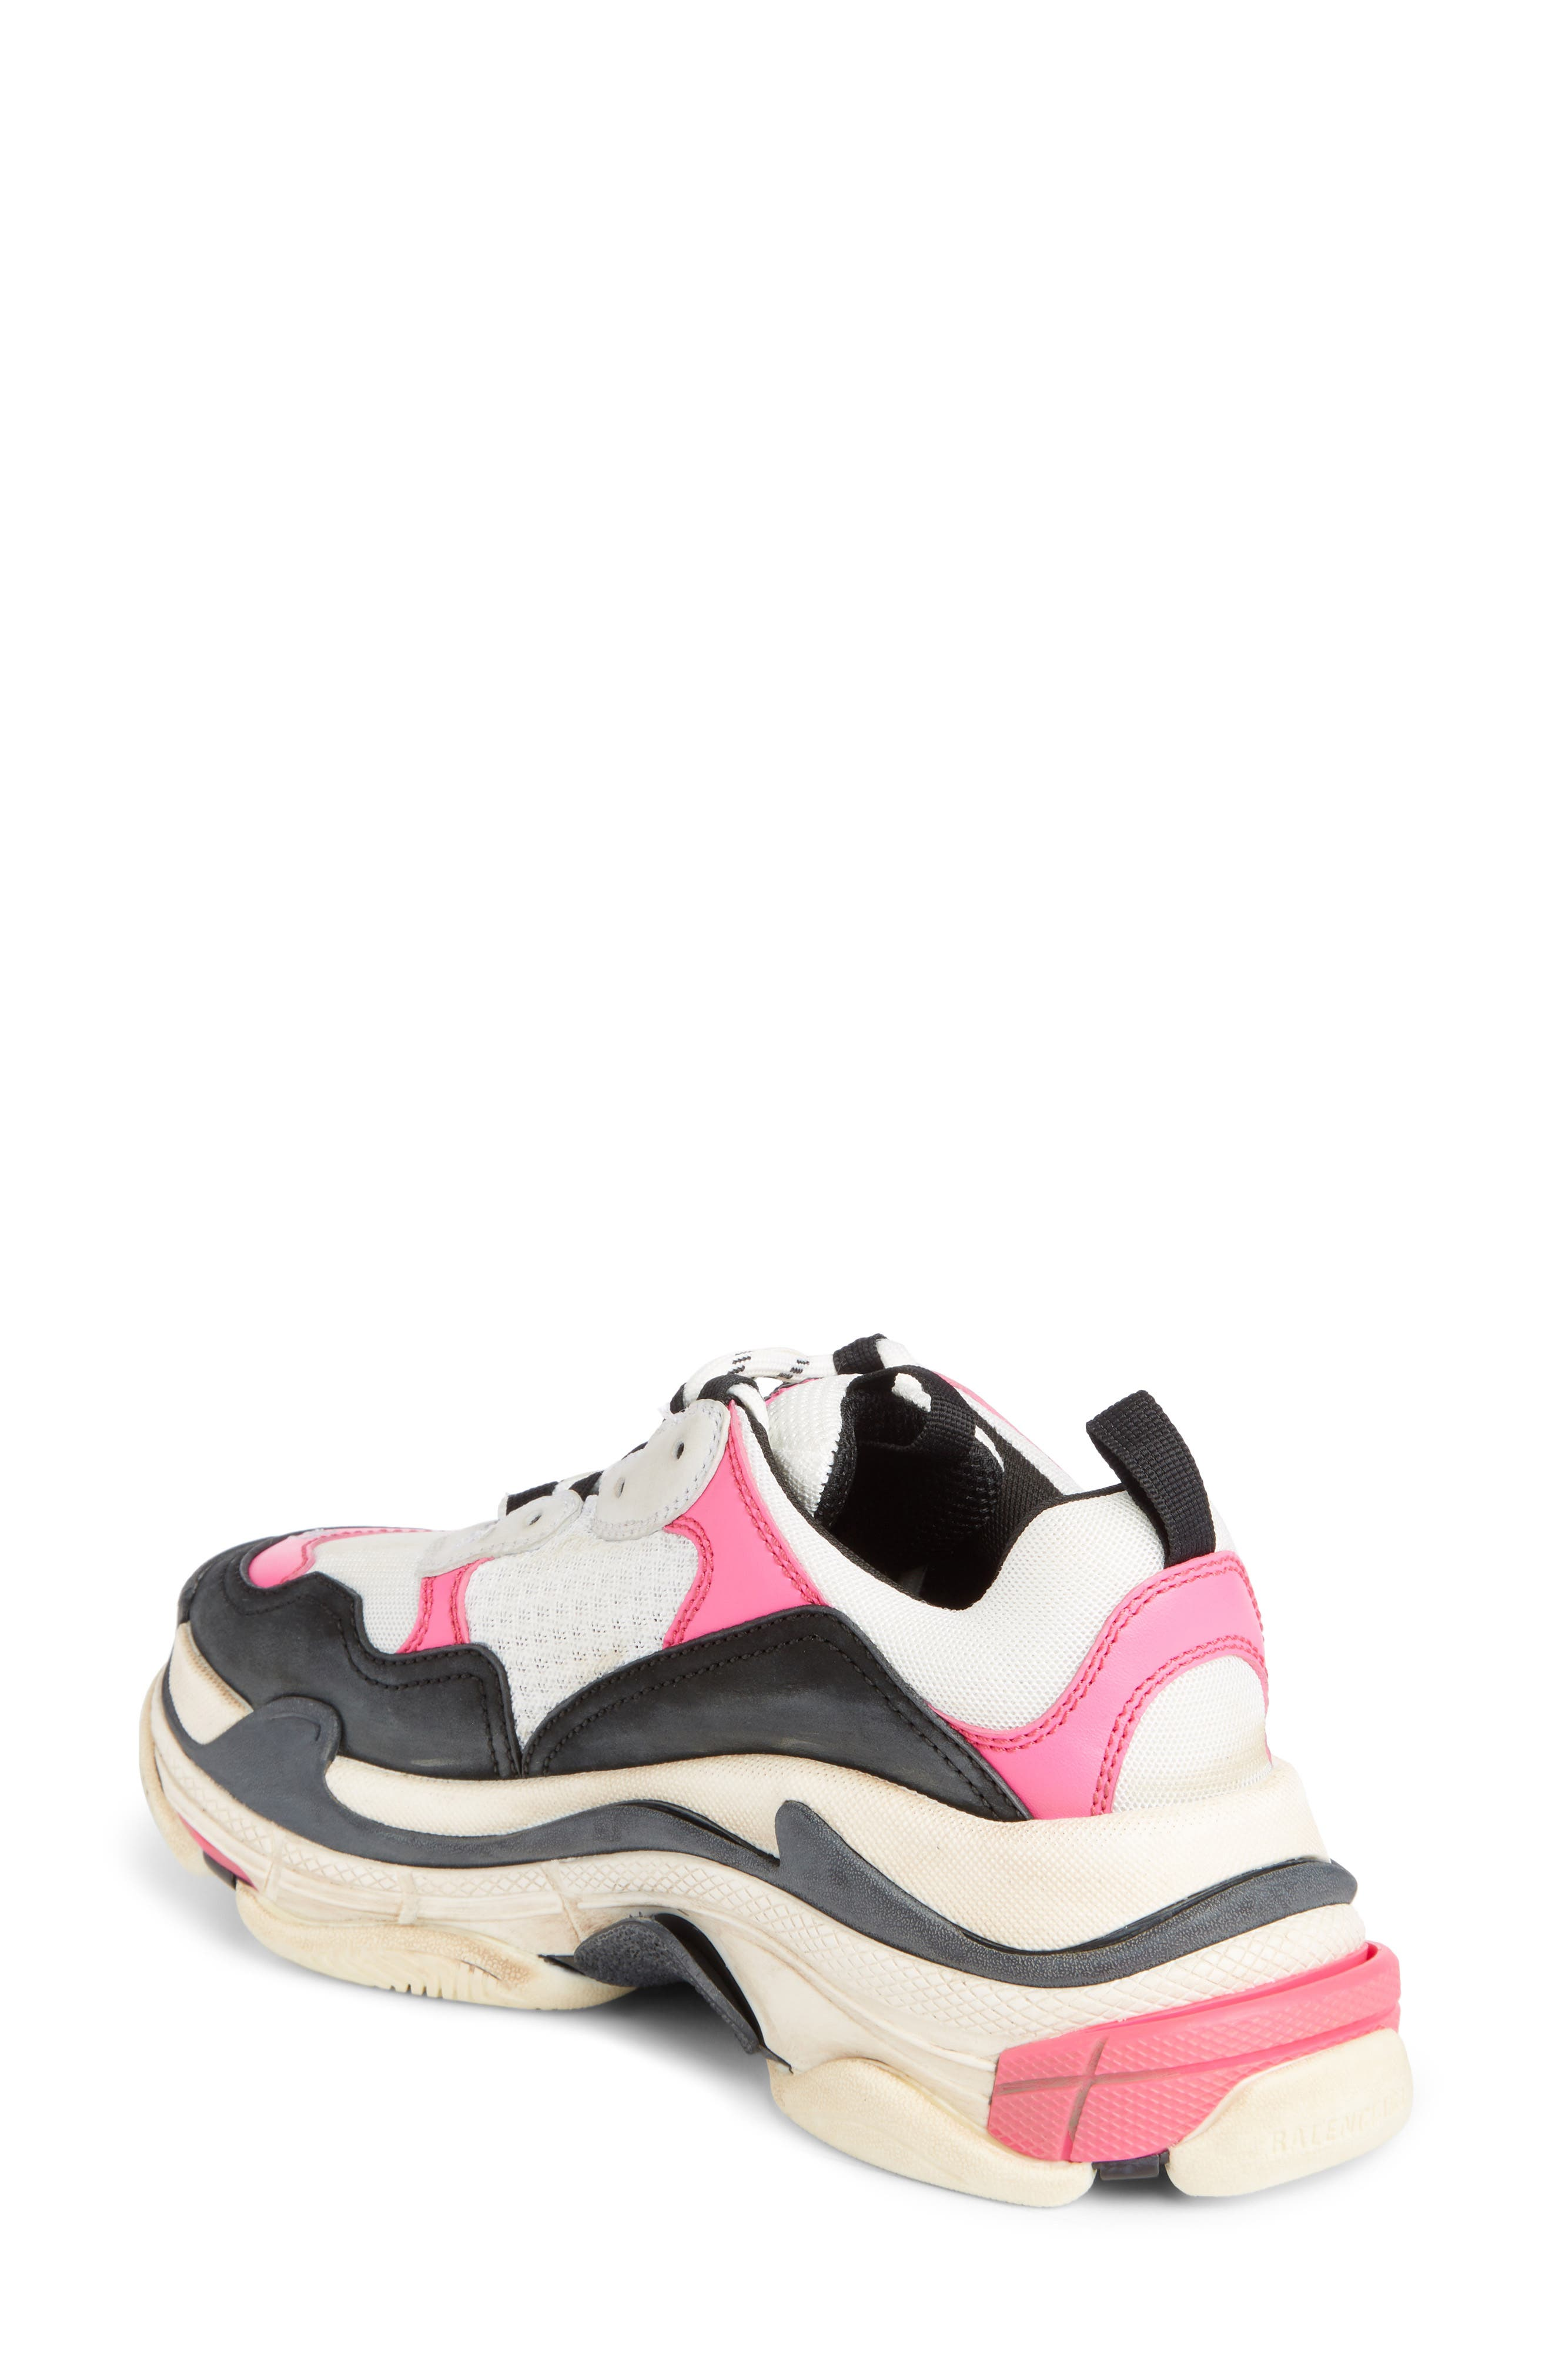 Triple S Low Top Sneaker,                             Alternate thumbnail 2, color,                             ROSE FLUO/ BLACK/ WHITE